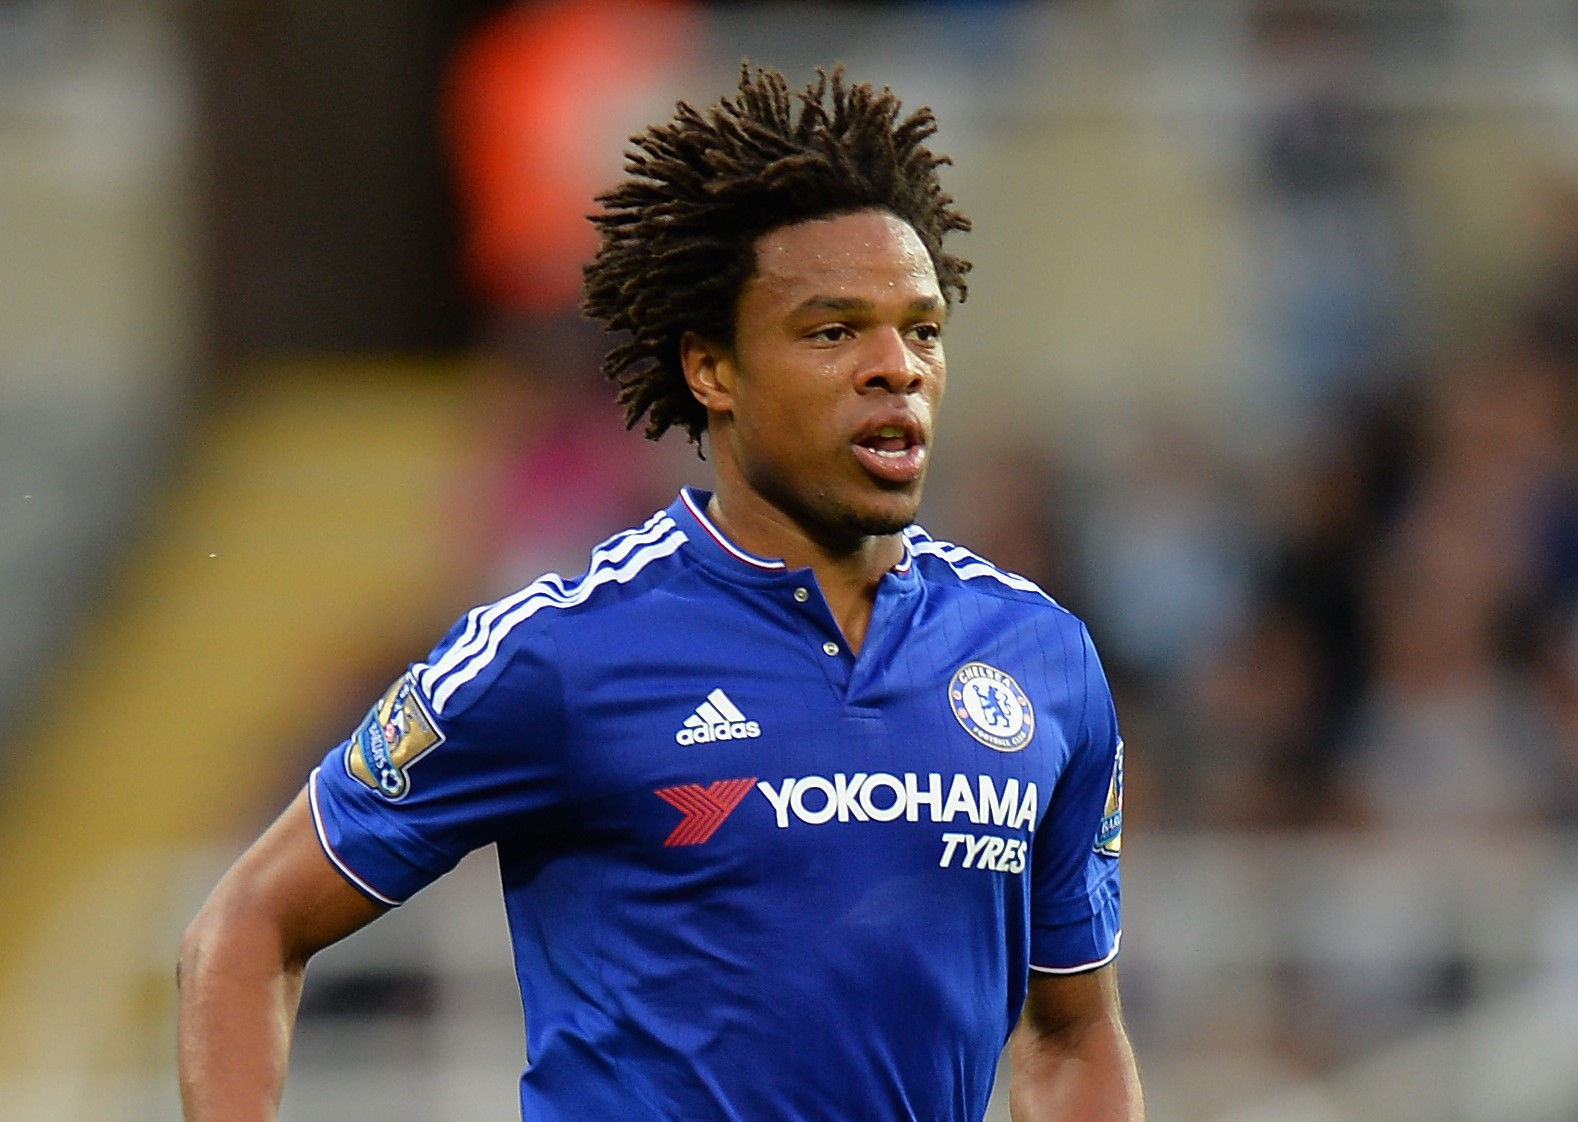 Newcastle United to offer loan deal for Chelsea's Loic Remy following Andros Townsend transfer